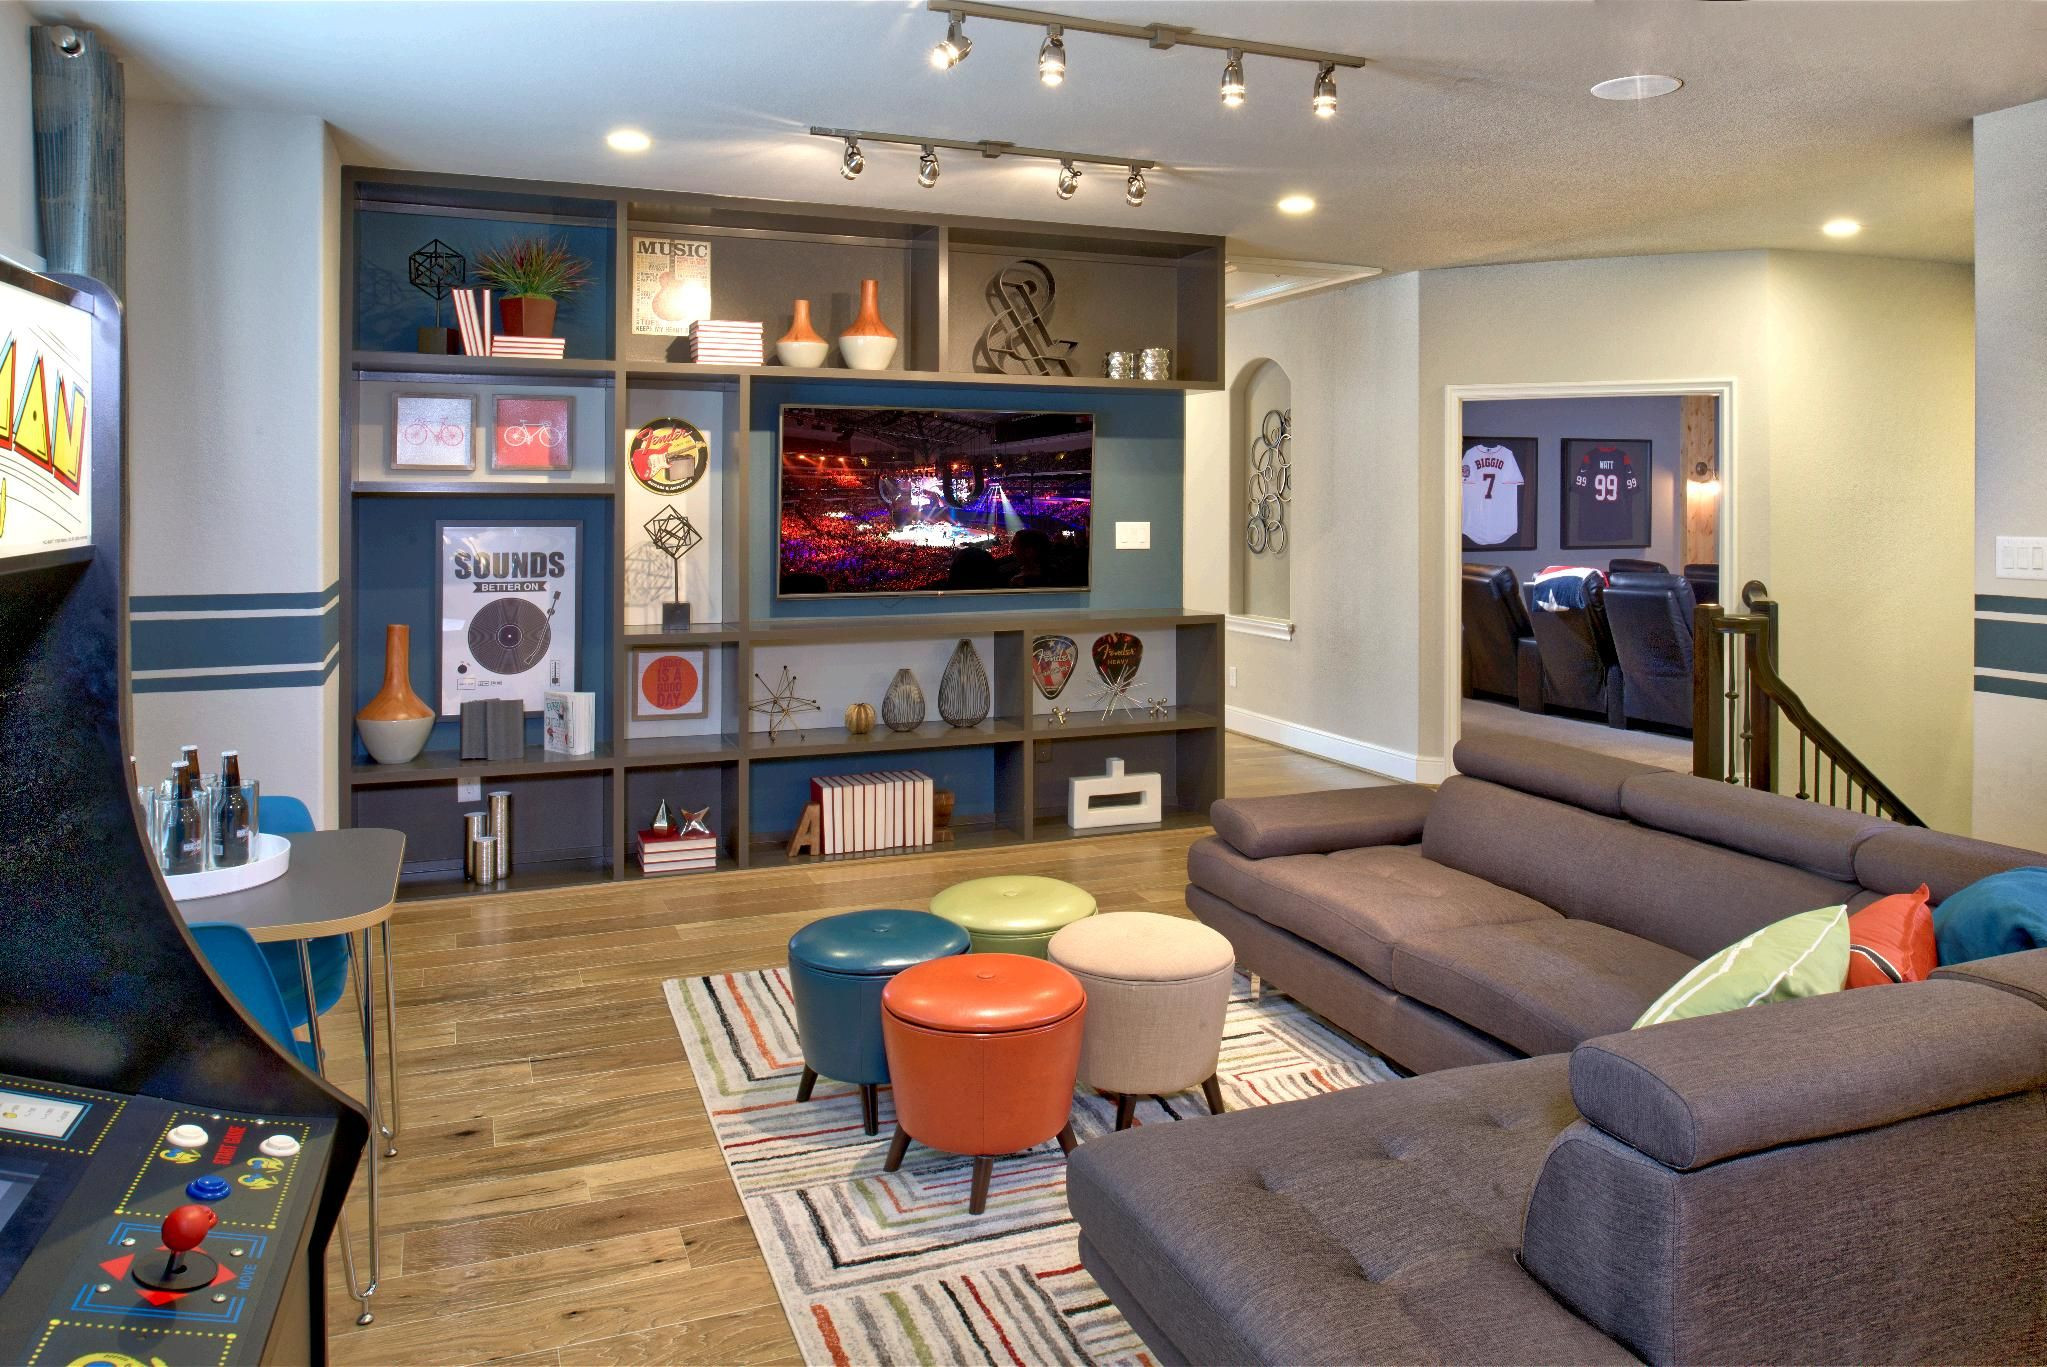 Best ideas about Kids Game Room Ideas . Save or Pin Kick back and relax with some friends in this game room Now.